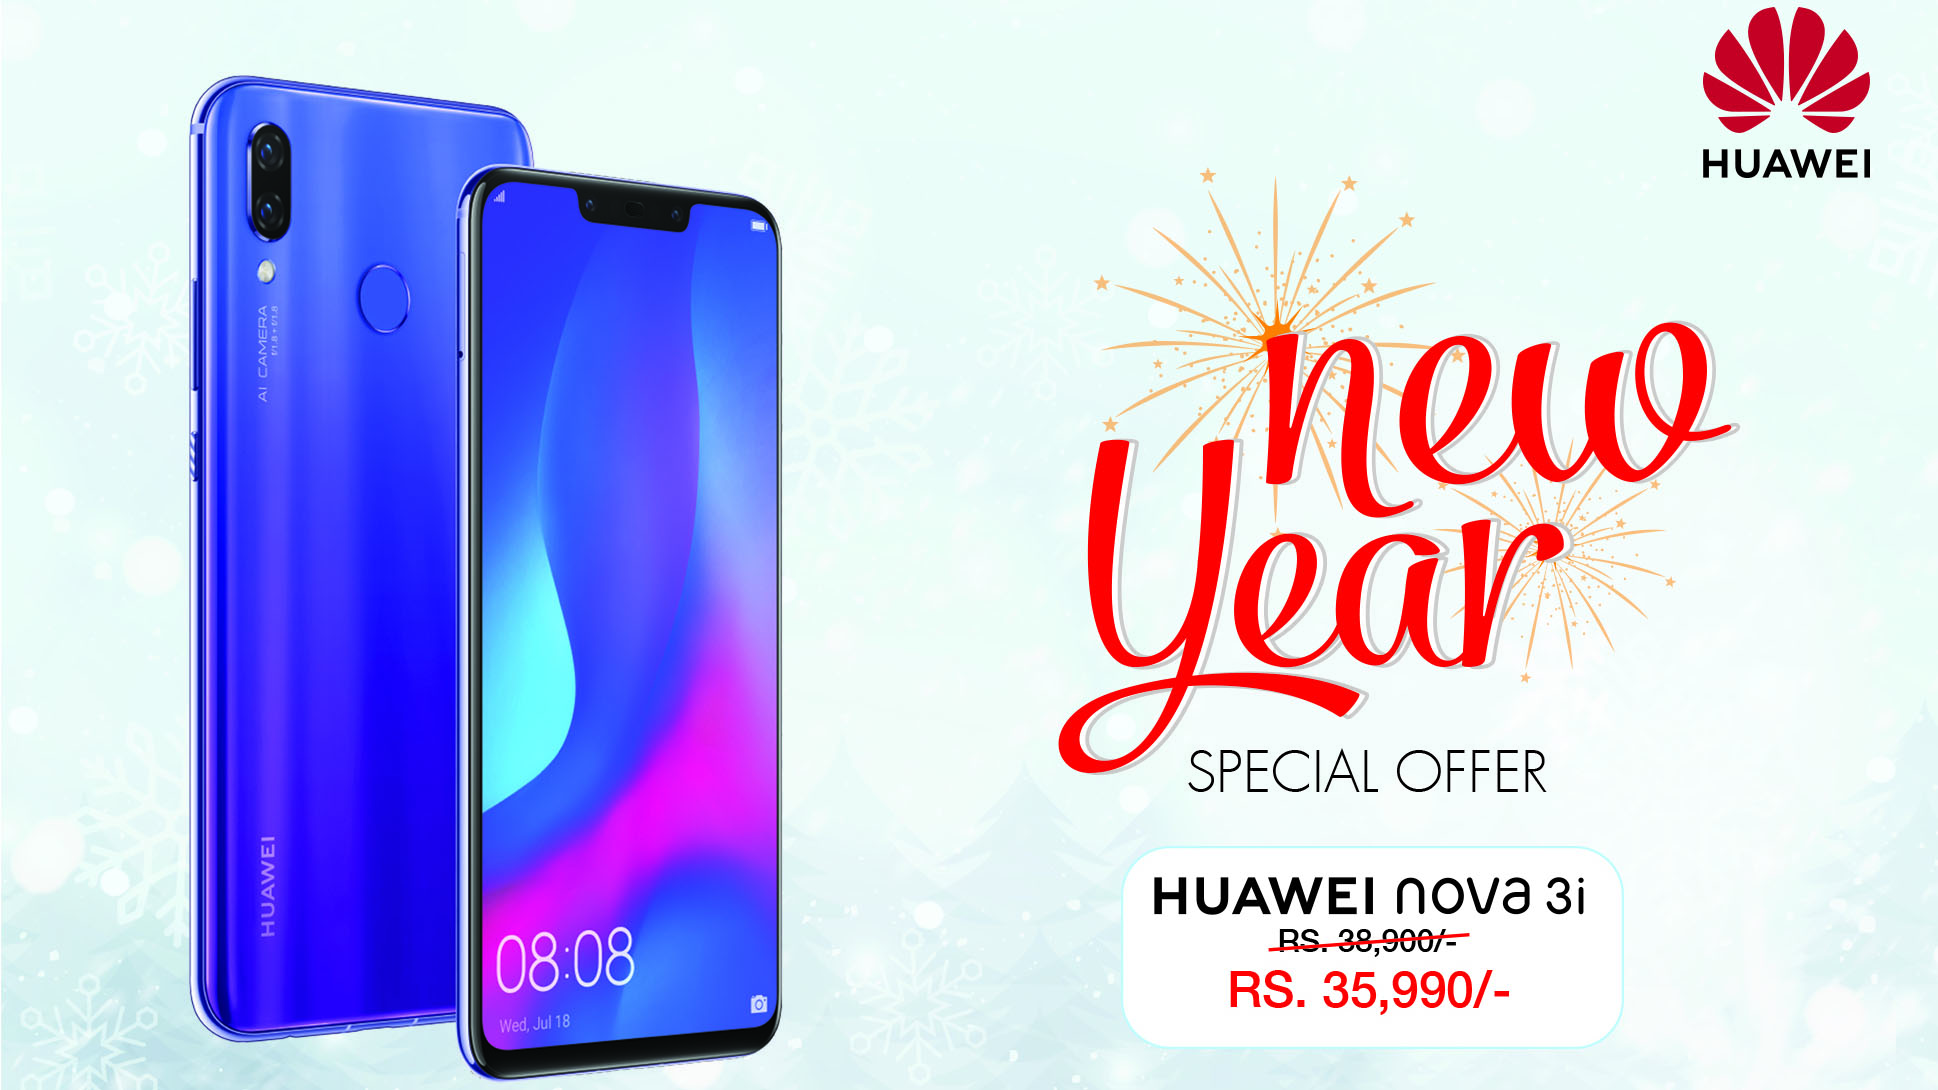 Huawei Nova 3i Price Drop